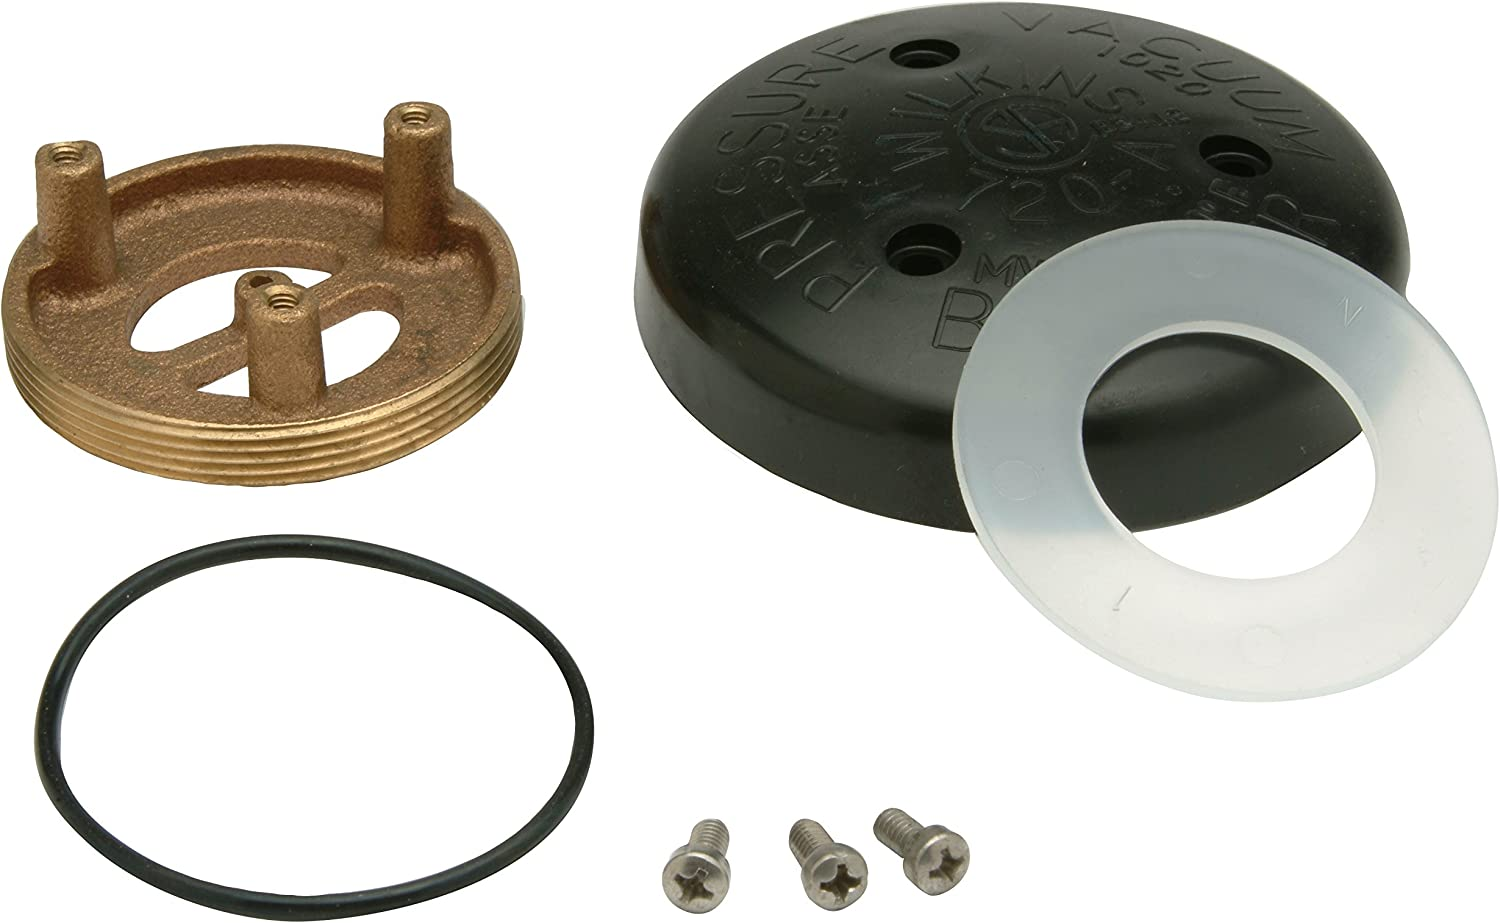 "Zurn RK1-720AB Wilkins Pressure Vacuum Breaker (PVB) Bonnet Repair Kit for 1/2"" to 1"" Model 720A and for 0.5"" to 1"""